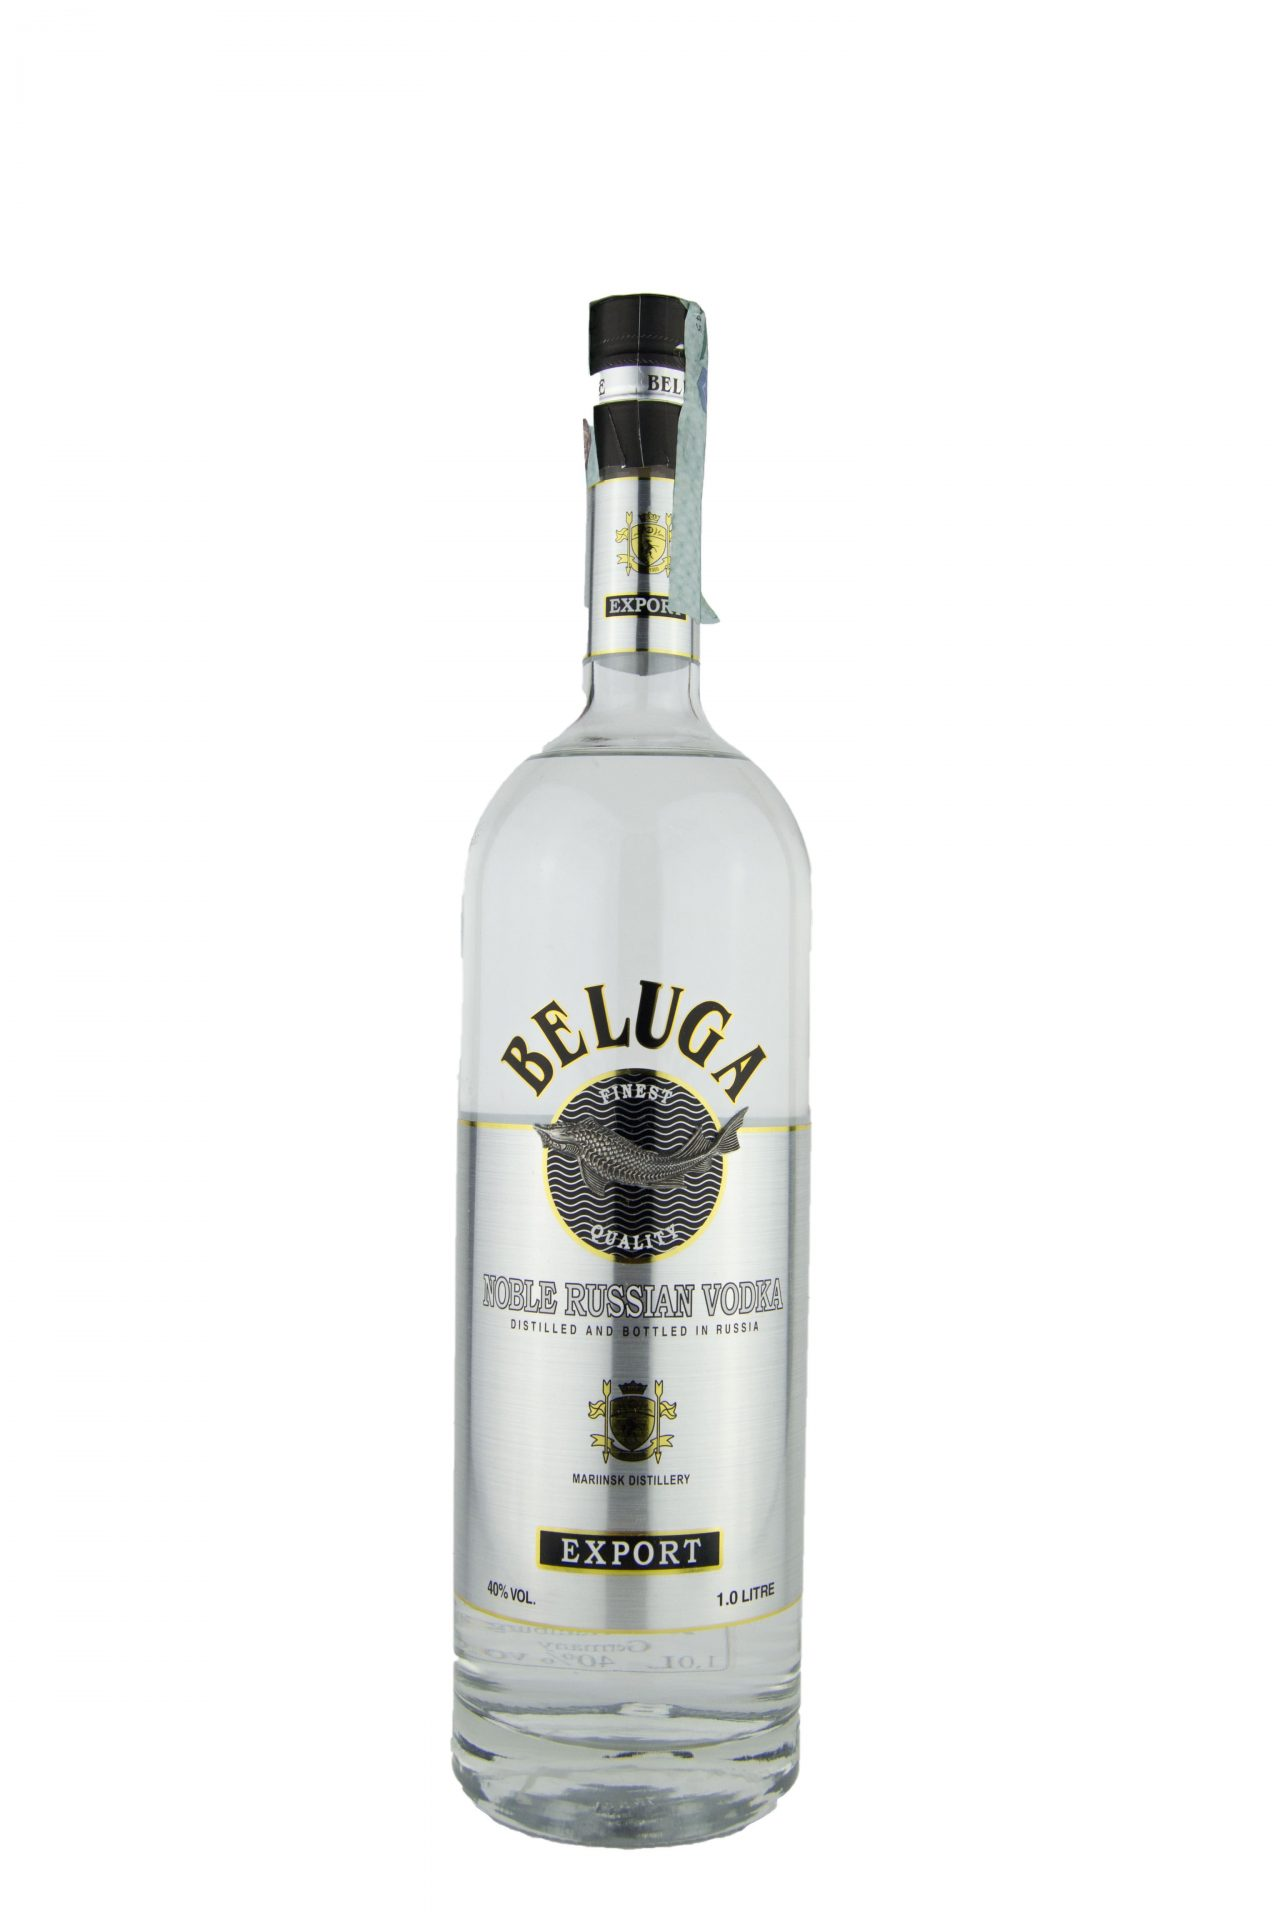 Beluga – Noble Russian Vodka